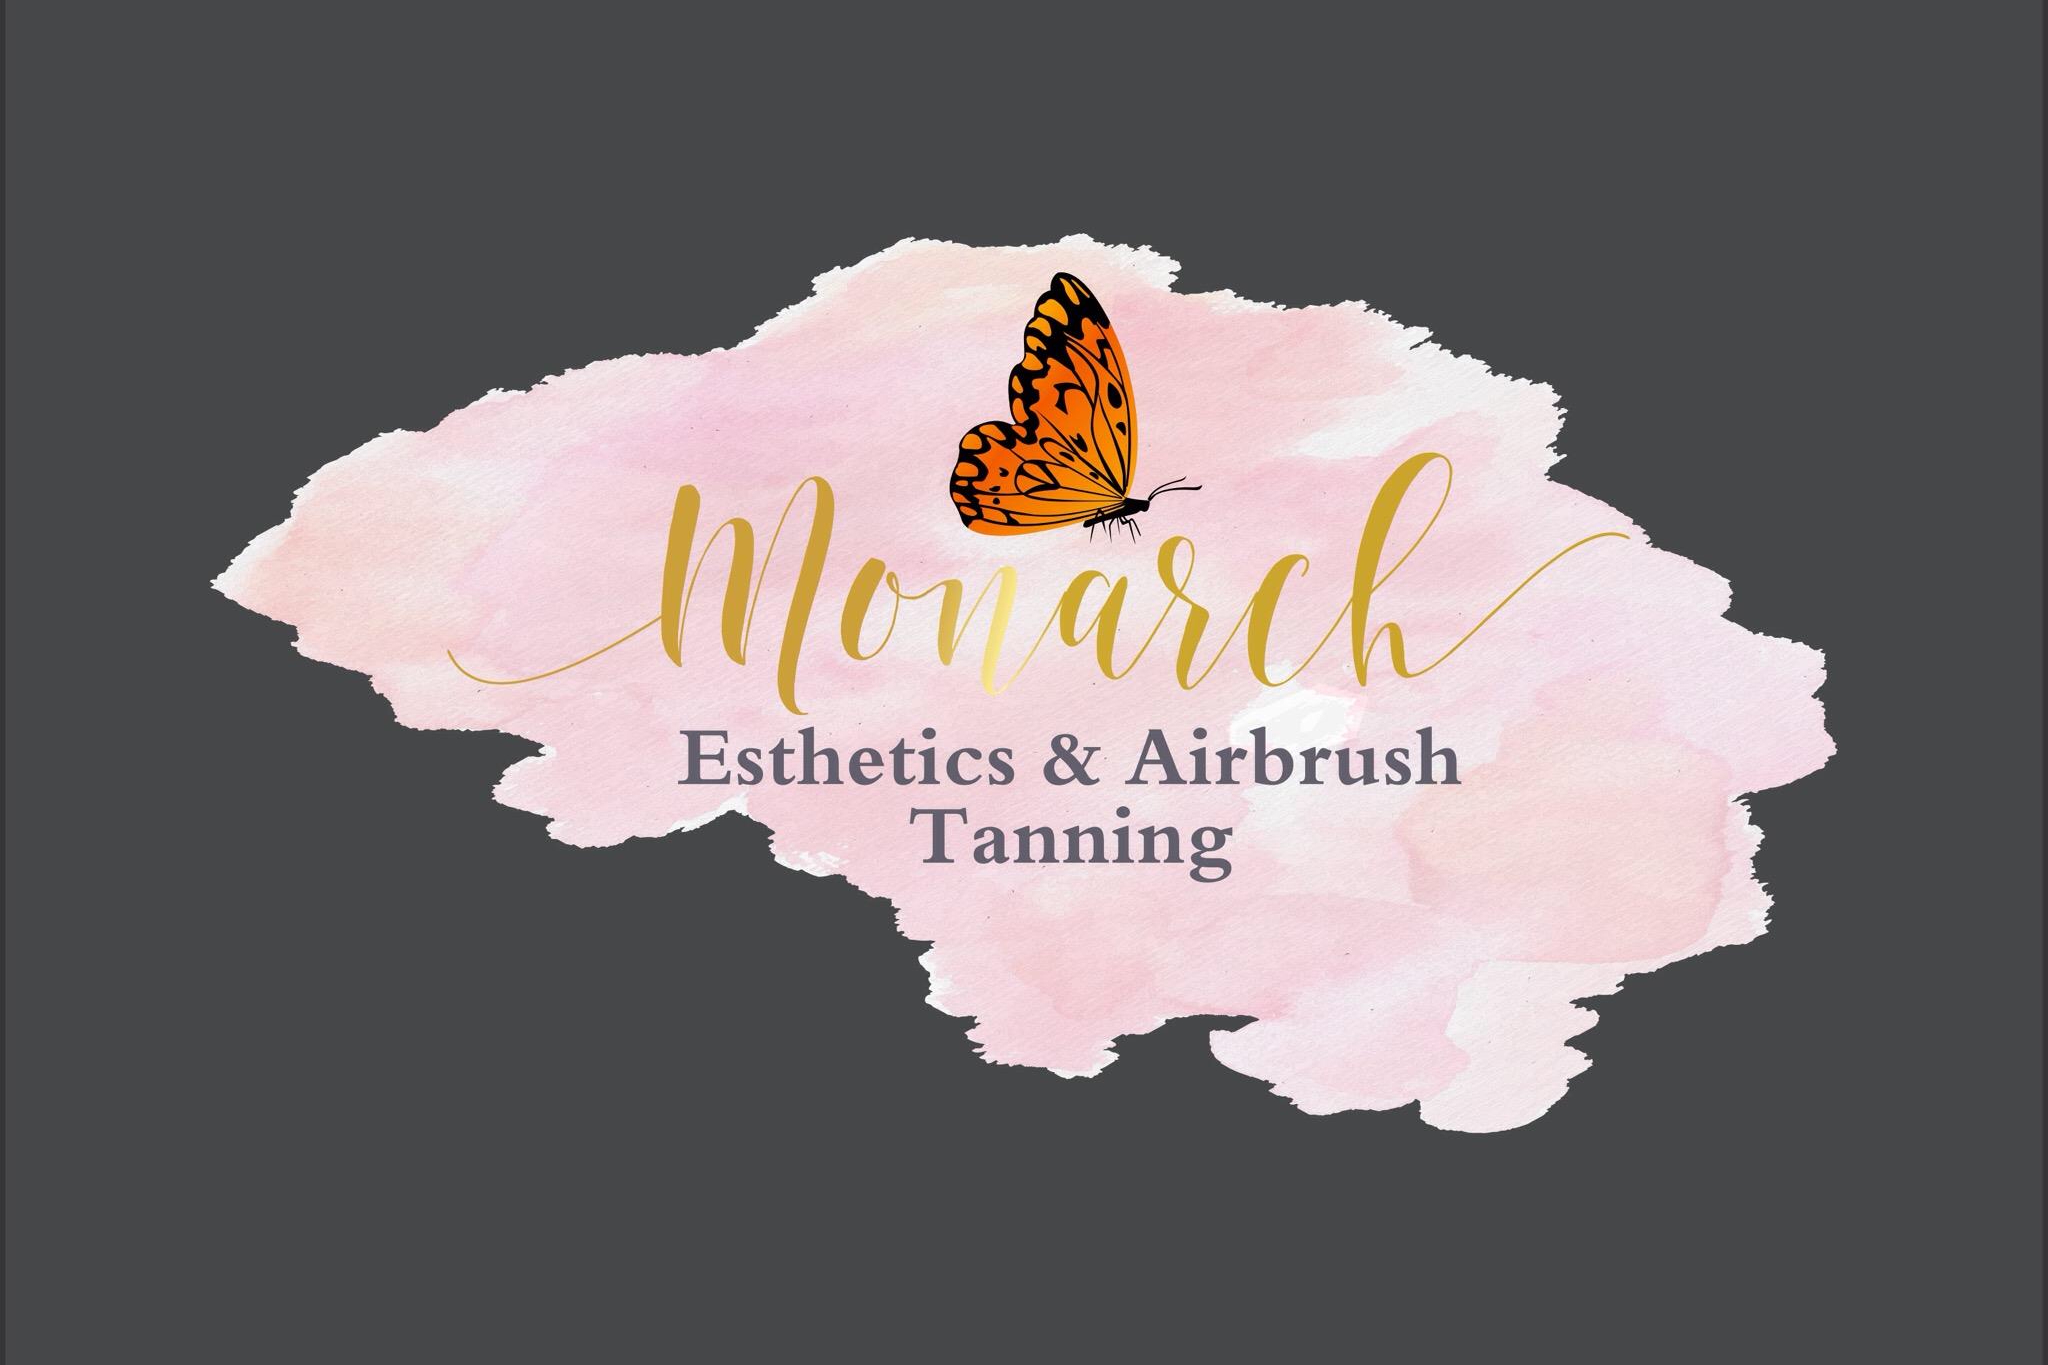 Monarch Esthetics And Airbrush Tanning In Vaughn WA